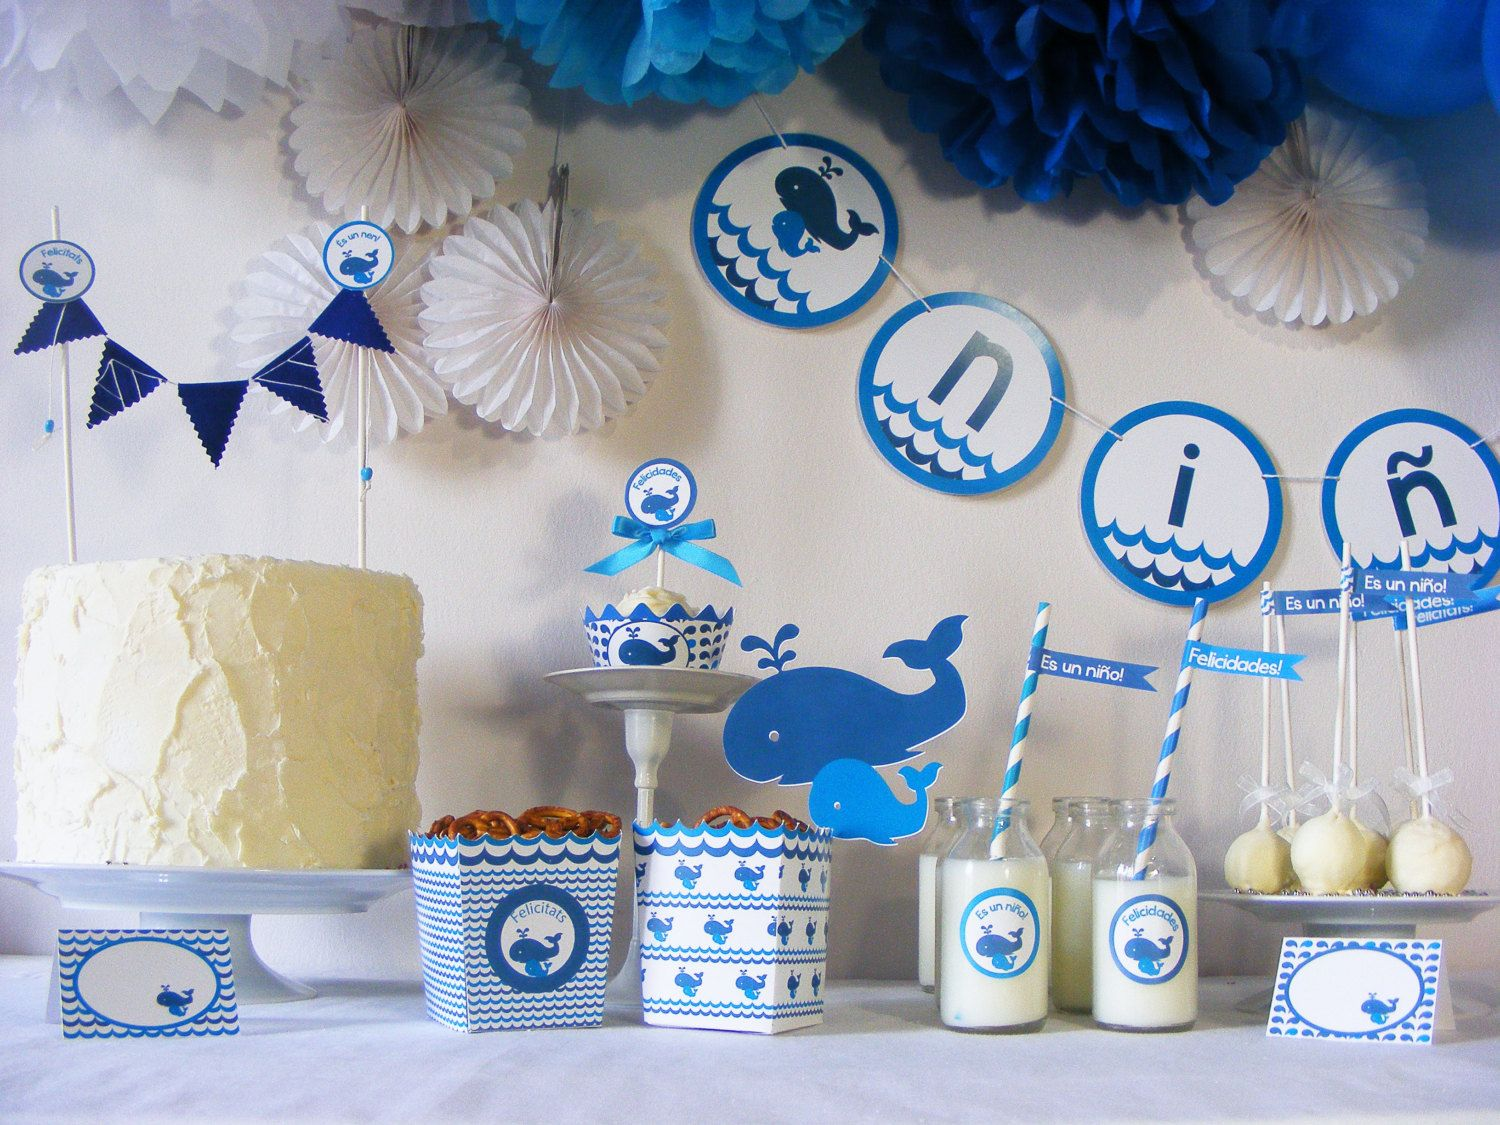 Kit de fiesta baby shower ballenas gender reveal party - Fiesta baby shower nina ...